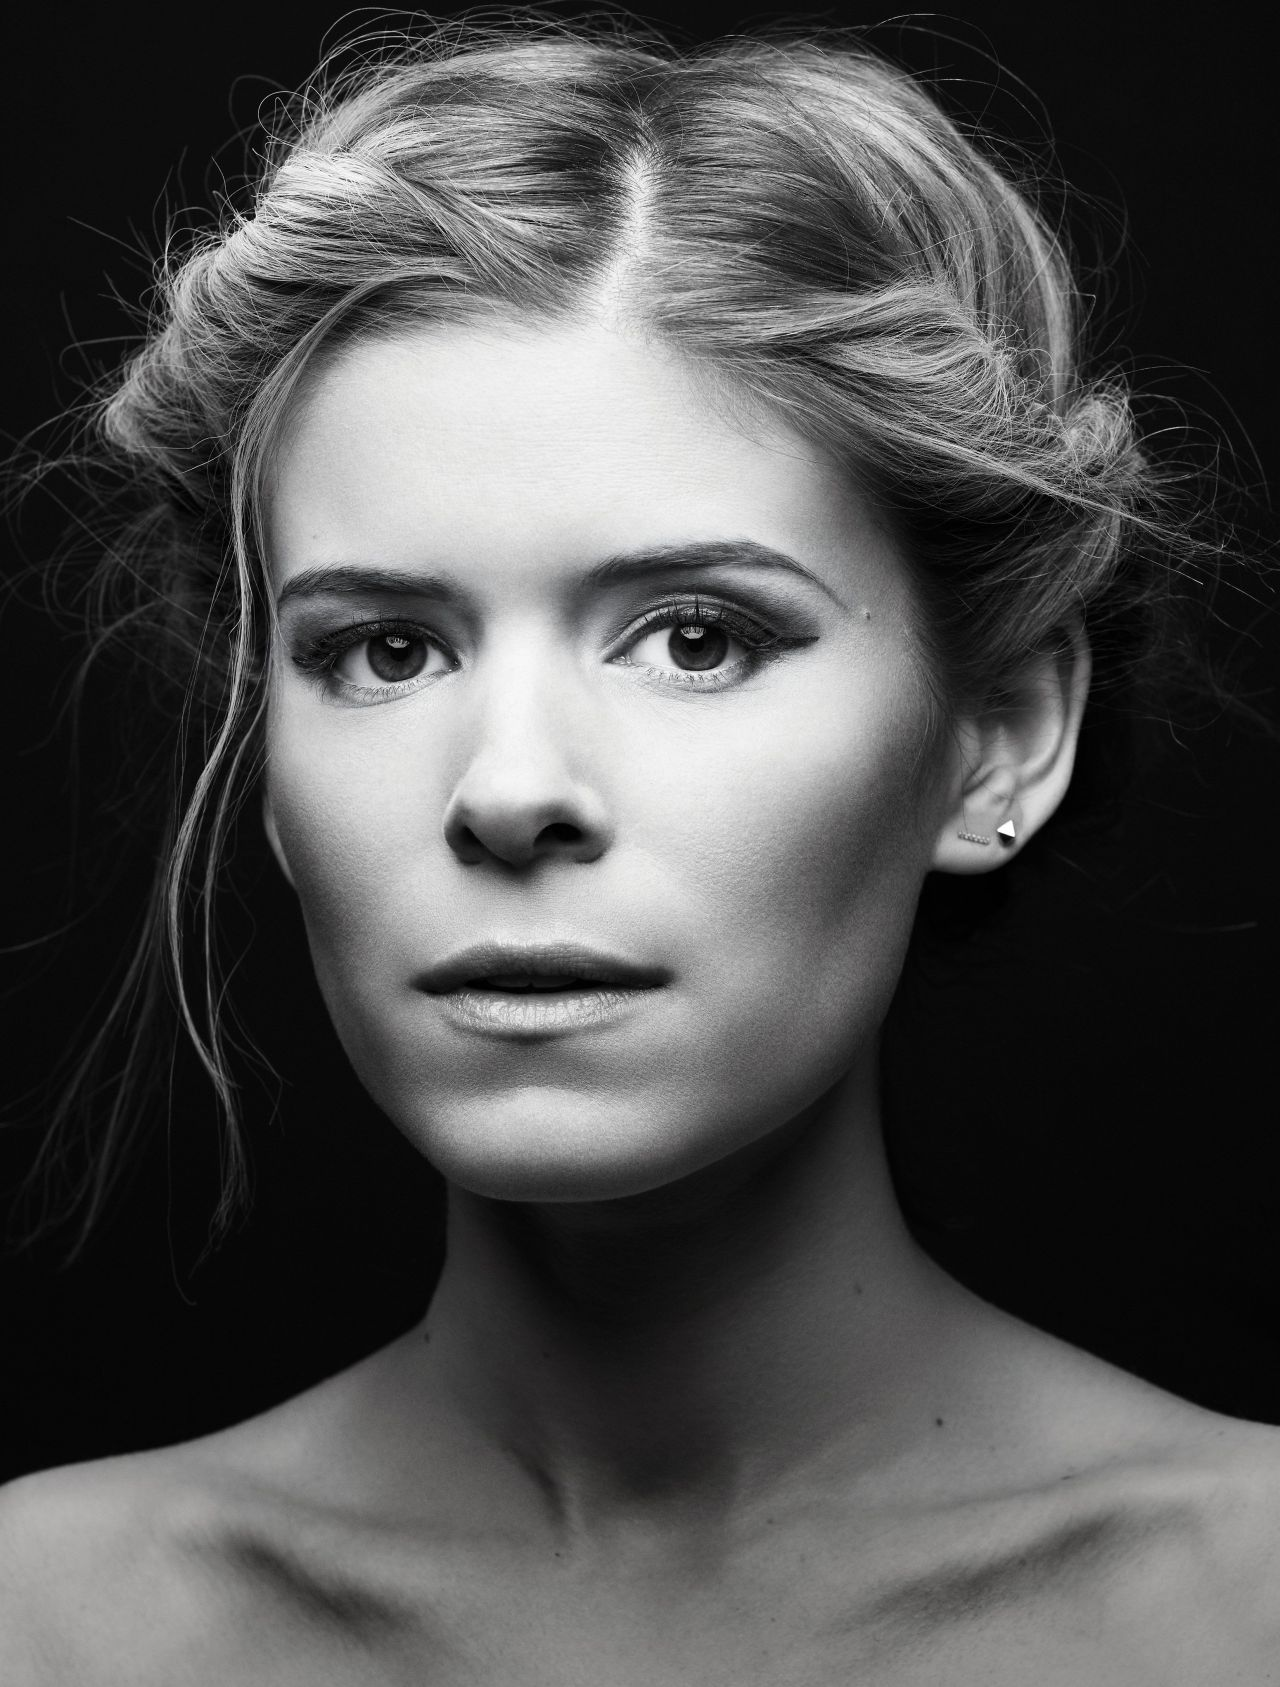 Kate Mara Black and White Photos - NEW YORK Magazine - February 2014 Issue